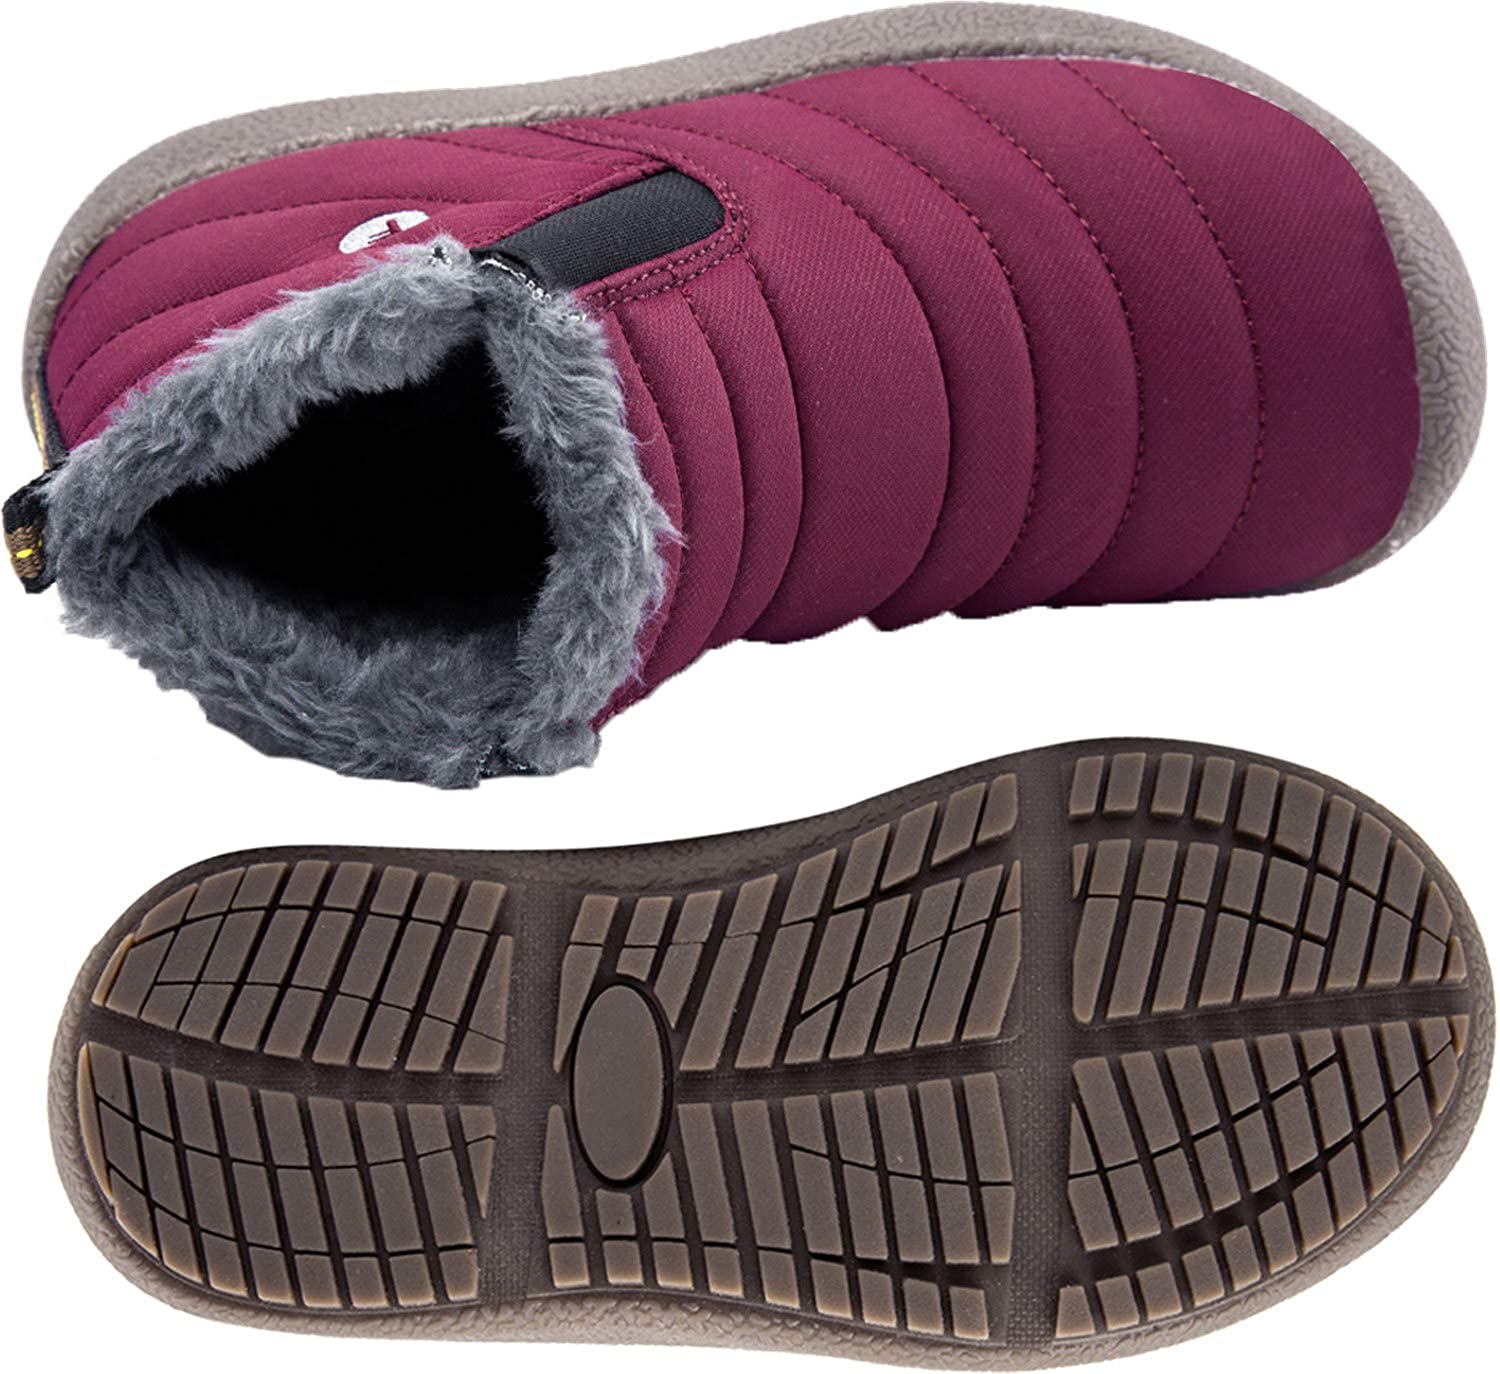 Barerun Kids Winter Snow Boots Fur Lined Warm Outdoor Ankle Boots Shoes for Girls Boys